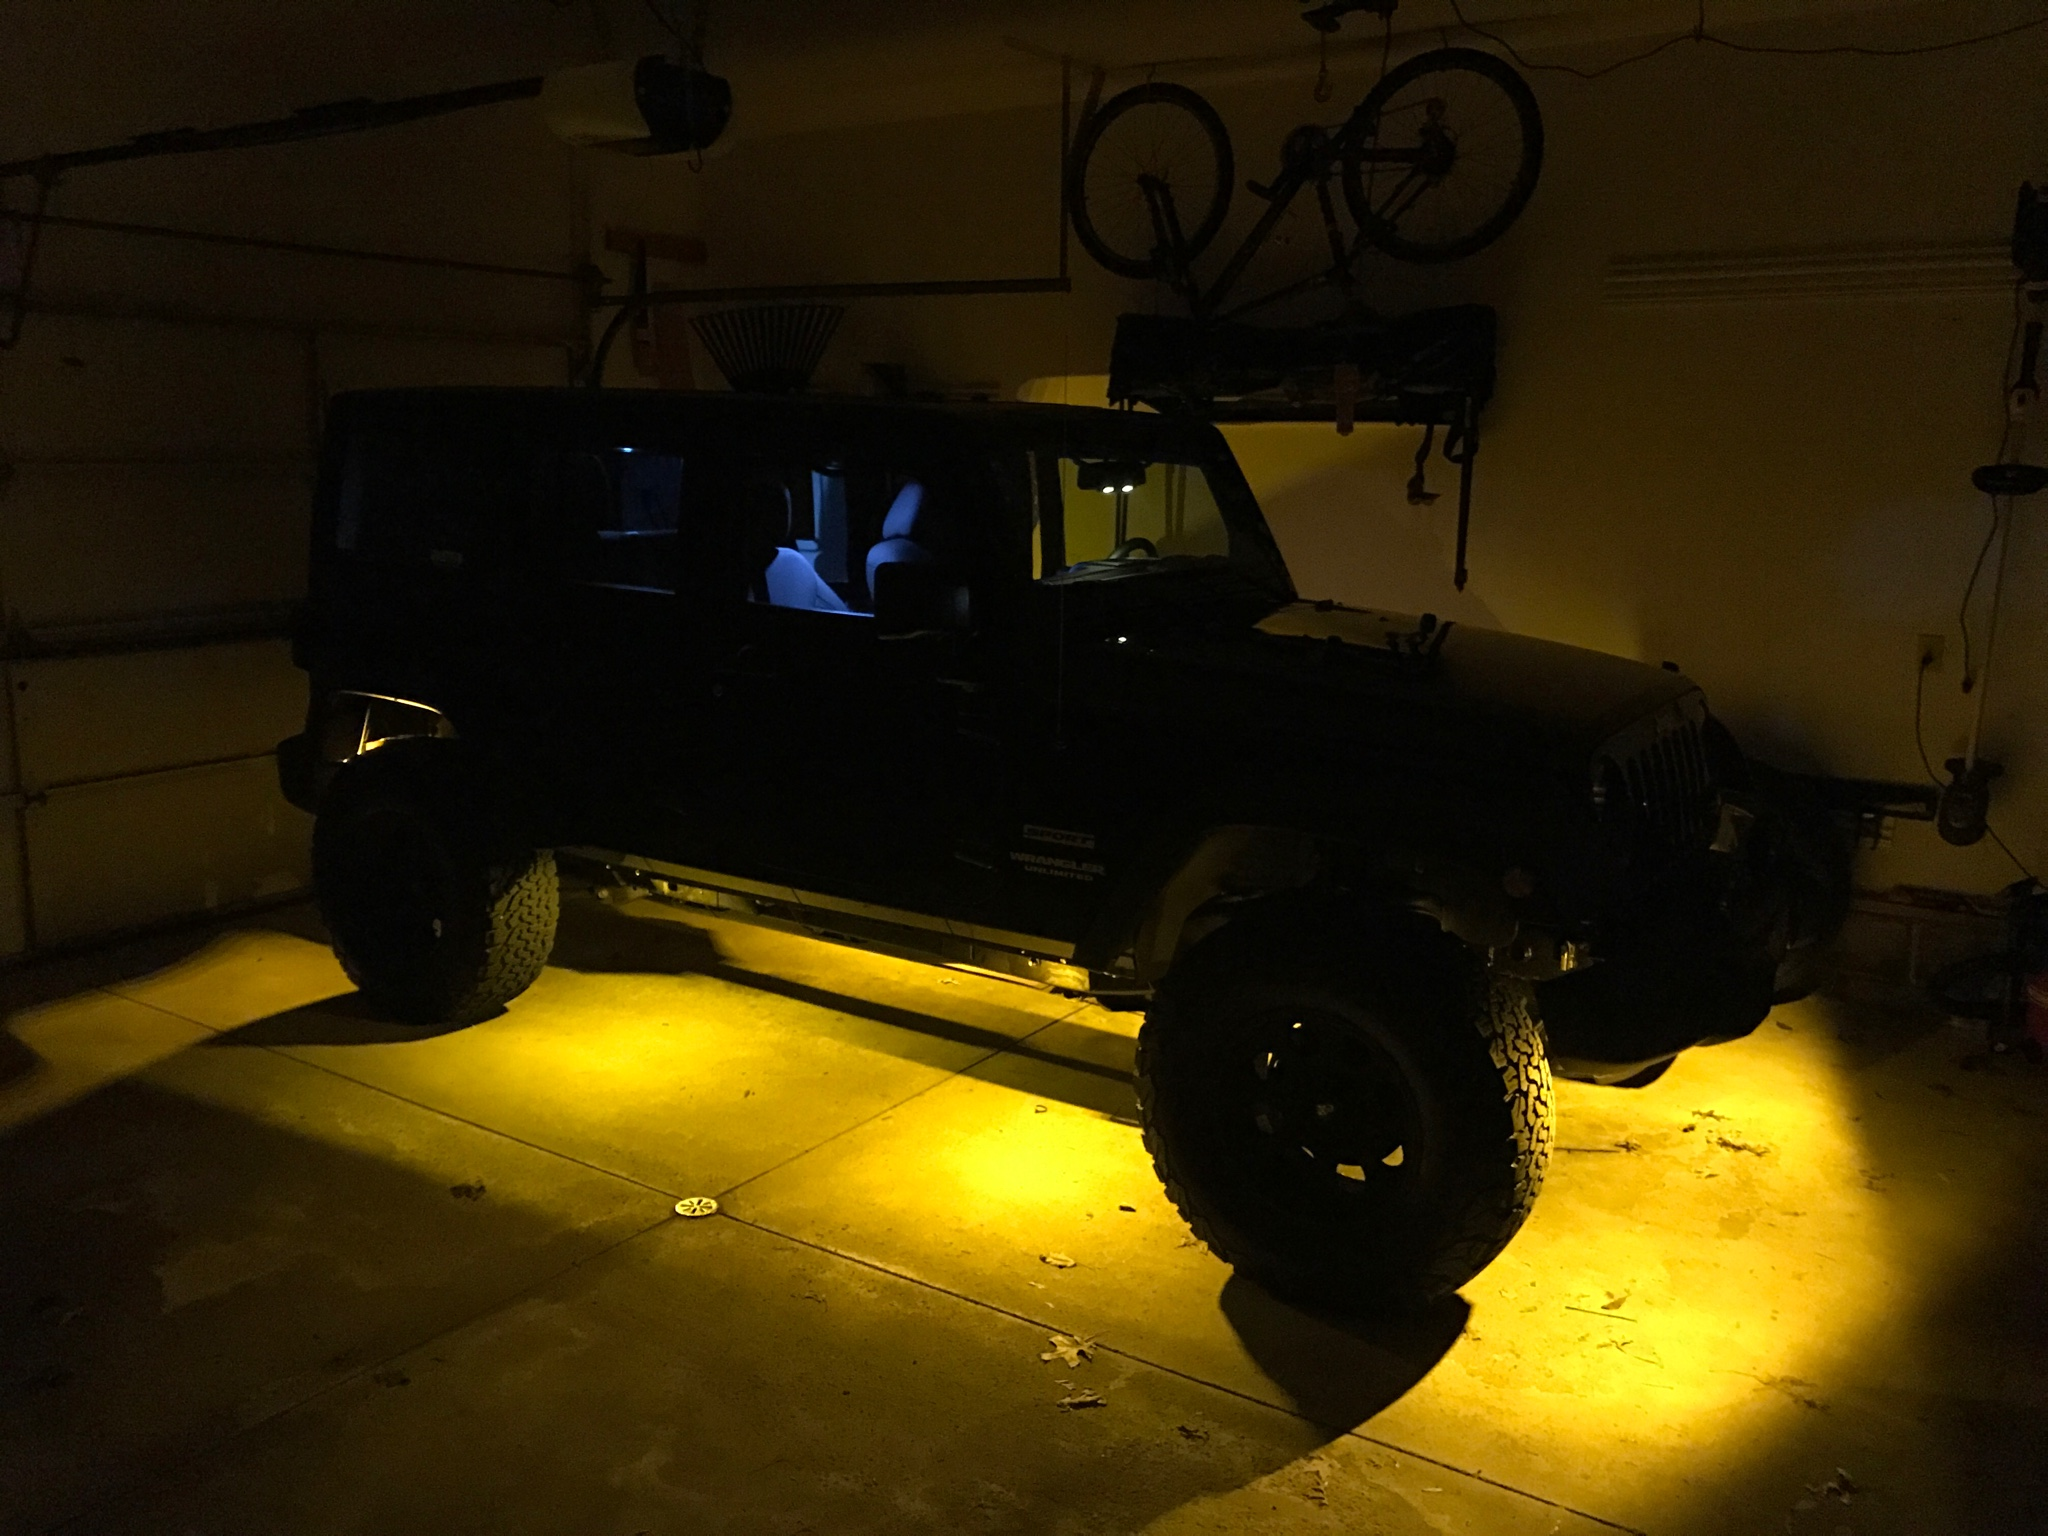 Rock Cyclone Kc Light Wiring Diagram Schematic Diagrams Jeep Lights Vs Lux Trail Lighting Jkowners Com Wrangler